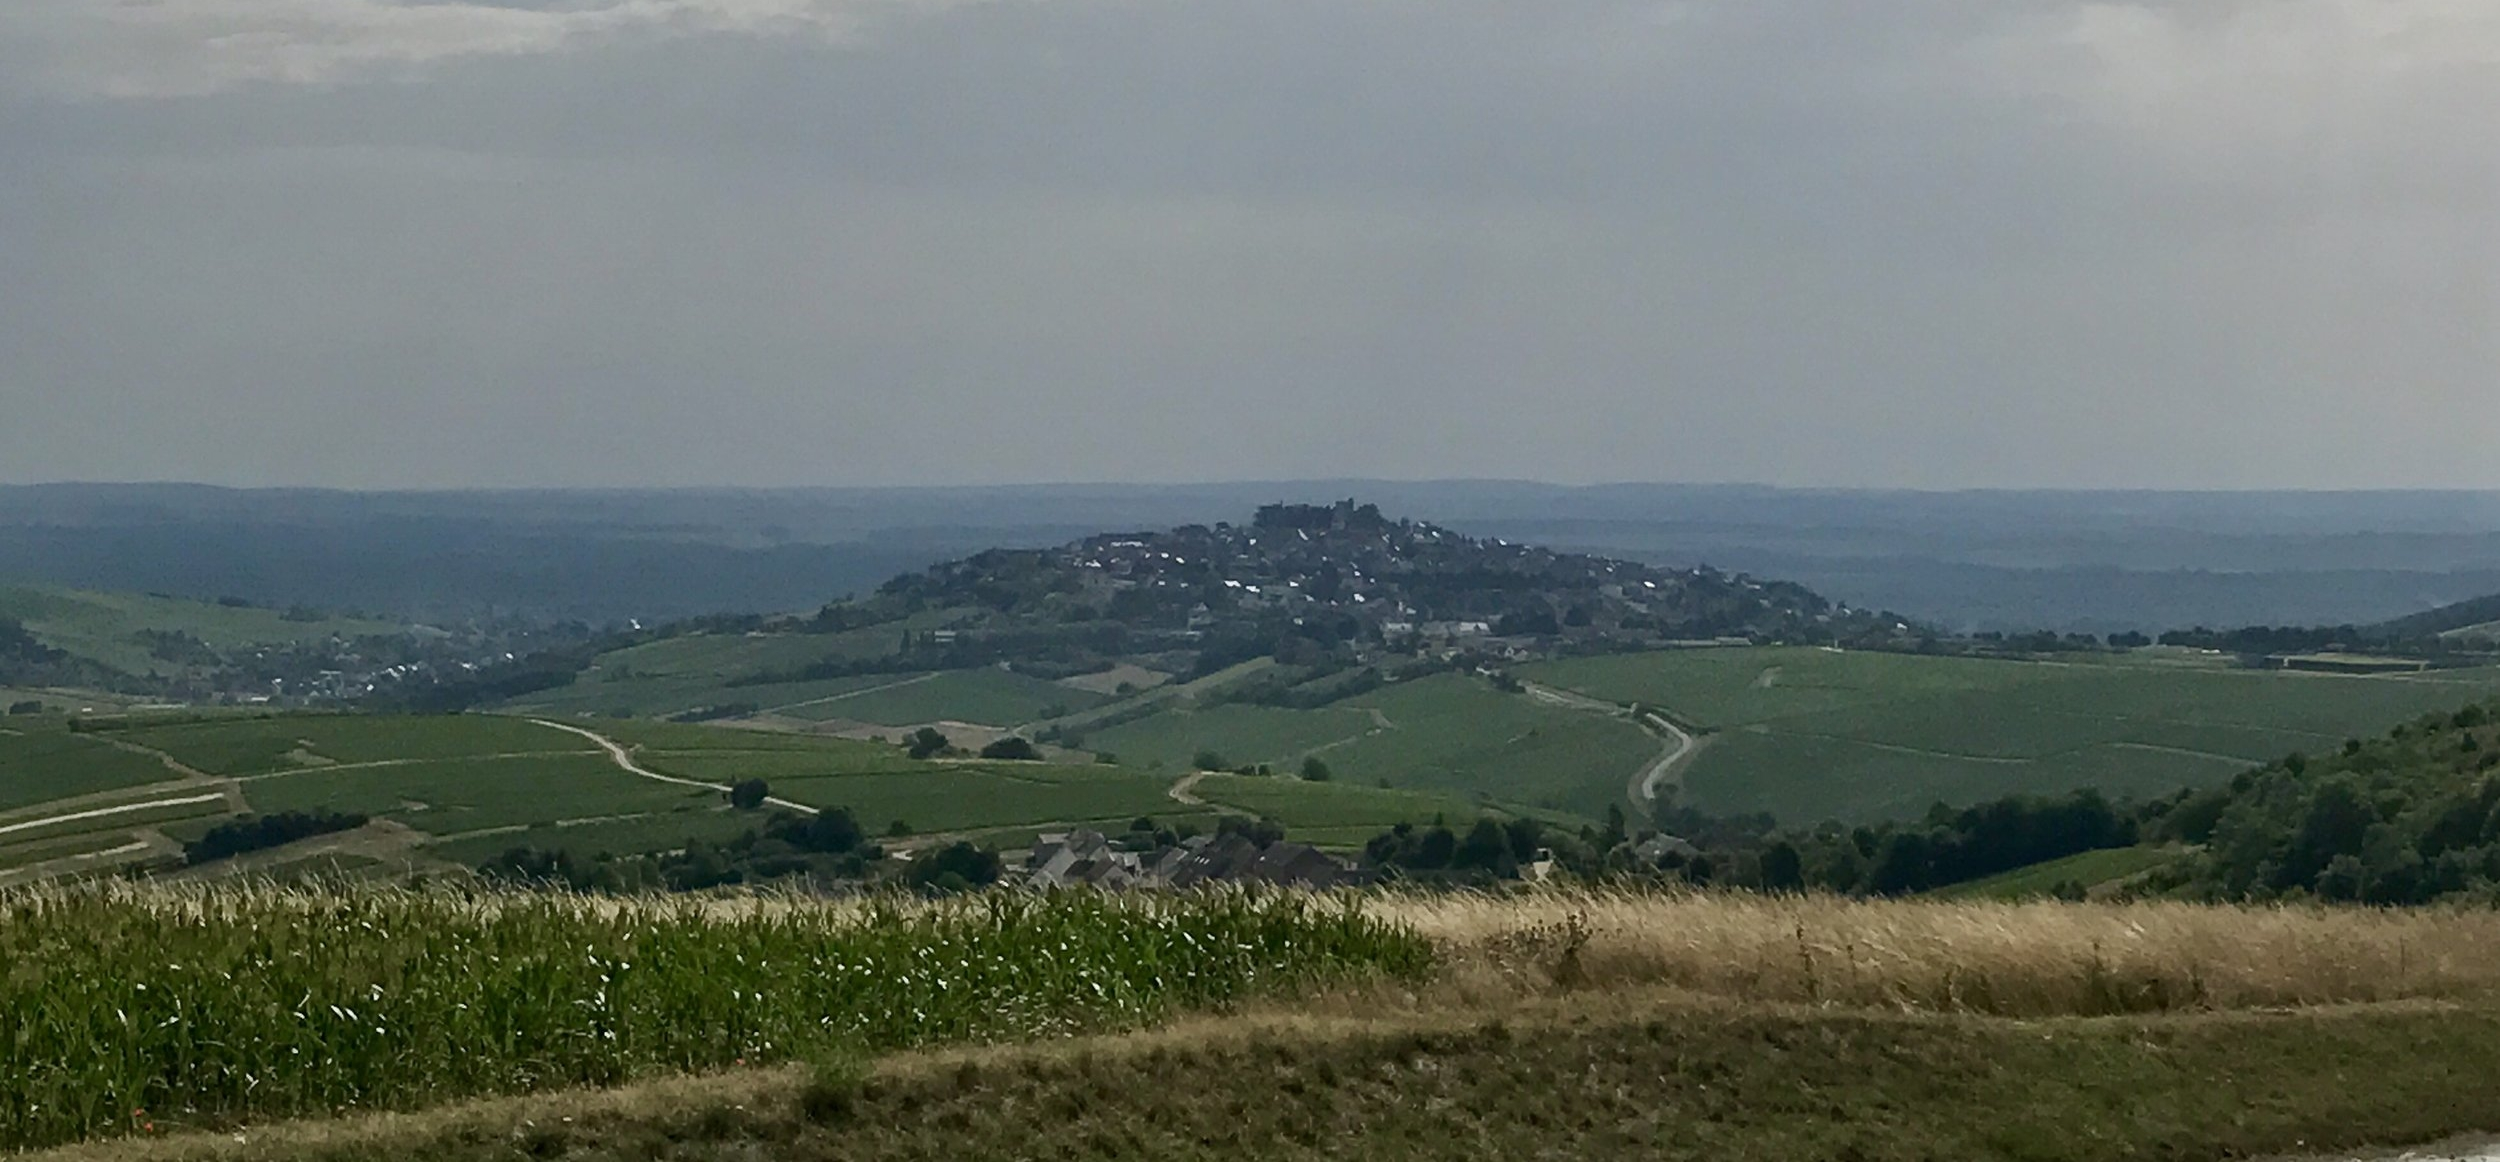 Looking across the valley at Sancerre